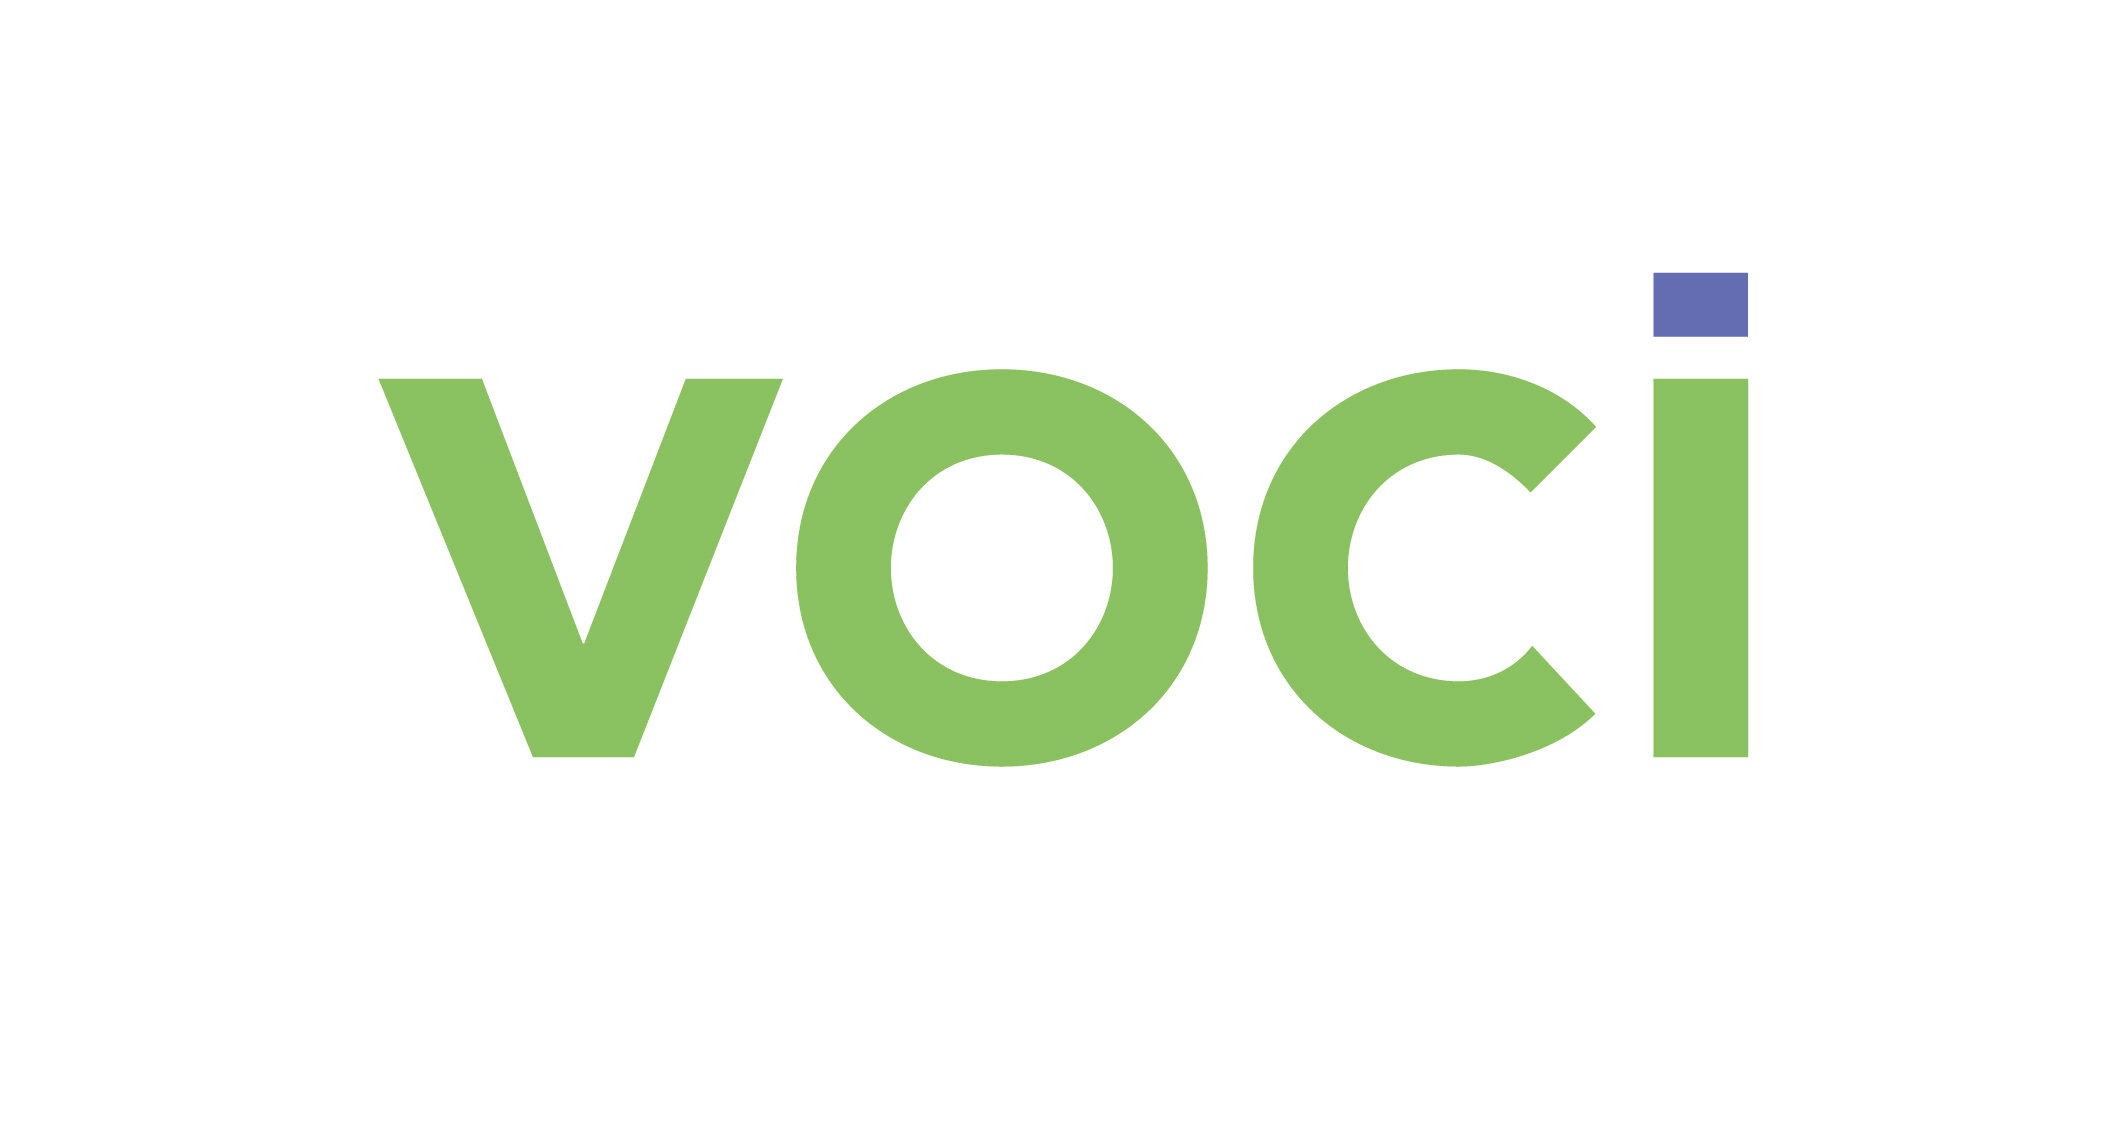 voci-logo-green-blue-dot.jpg